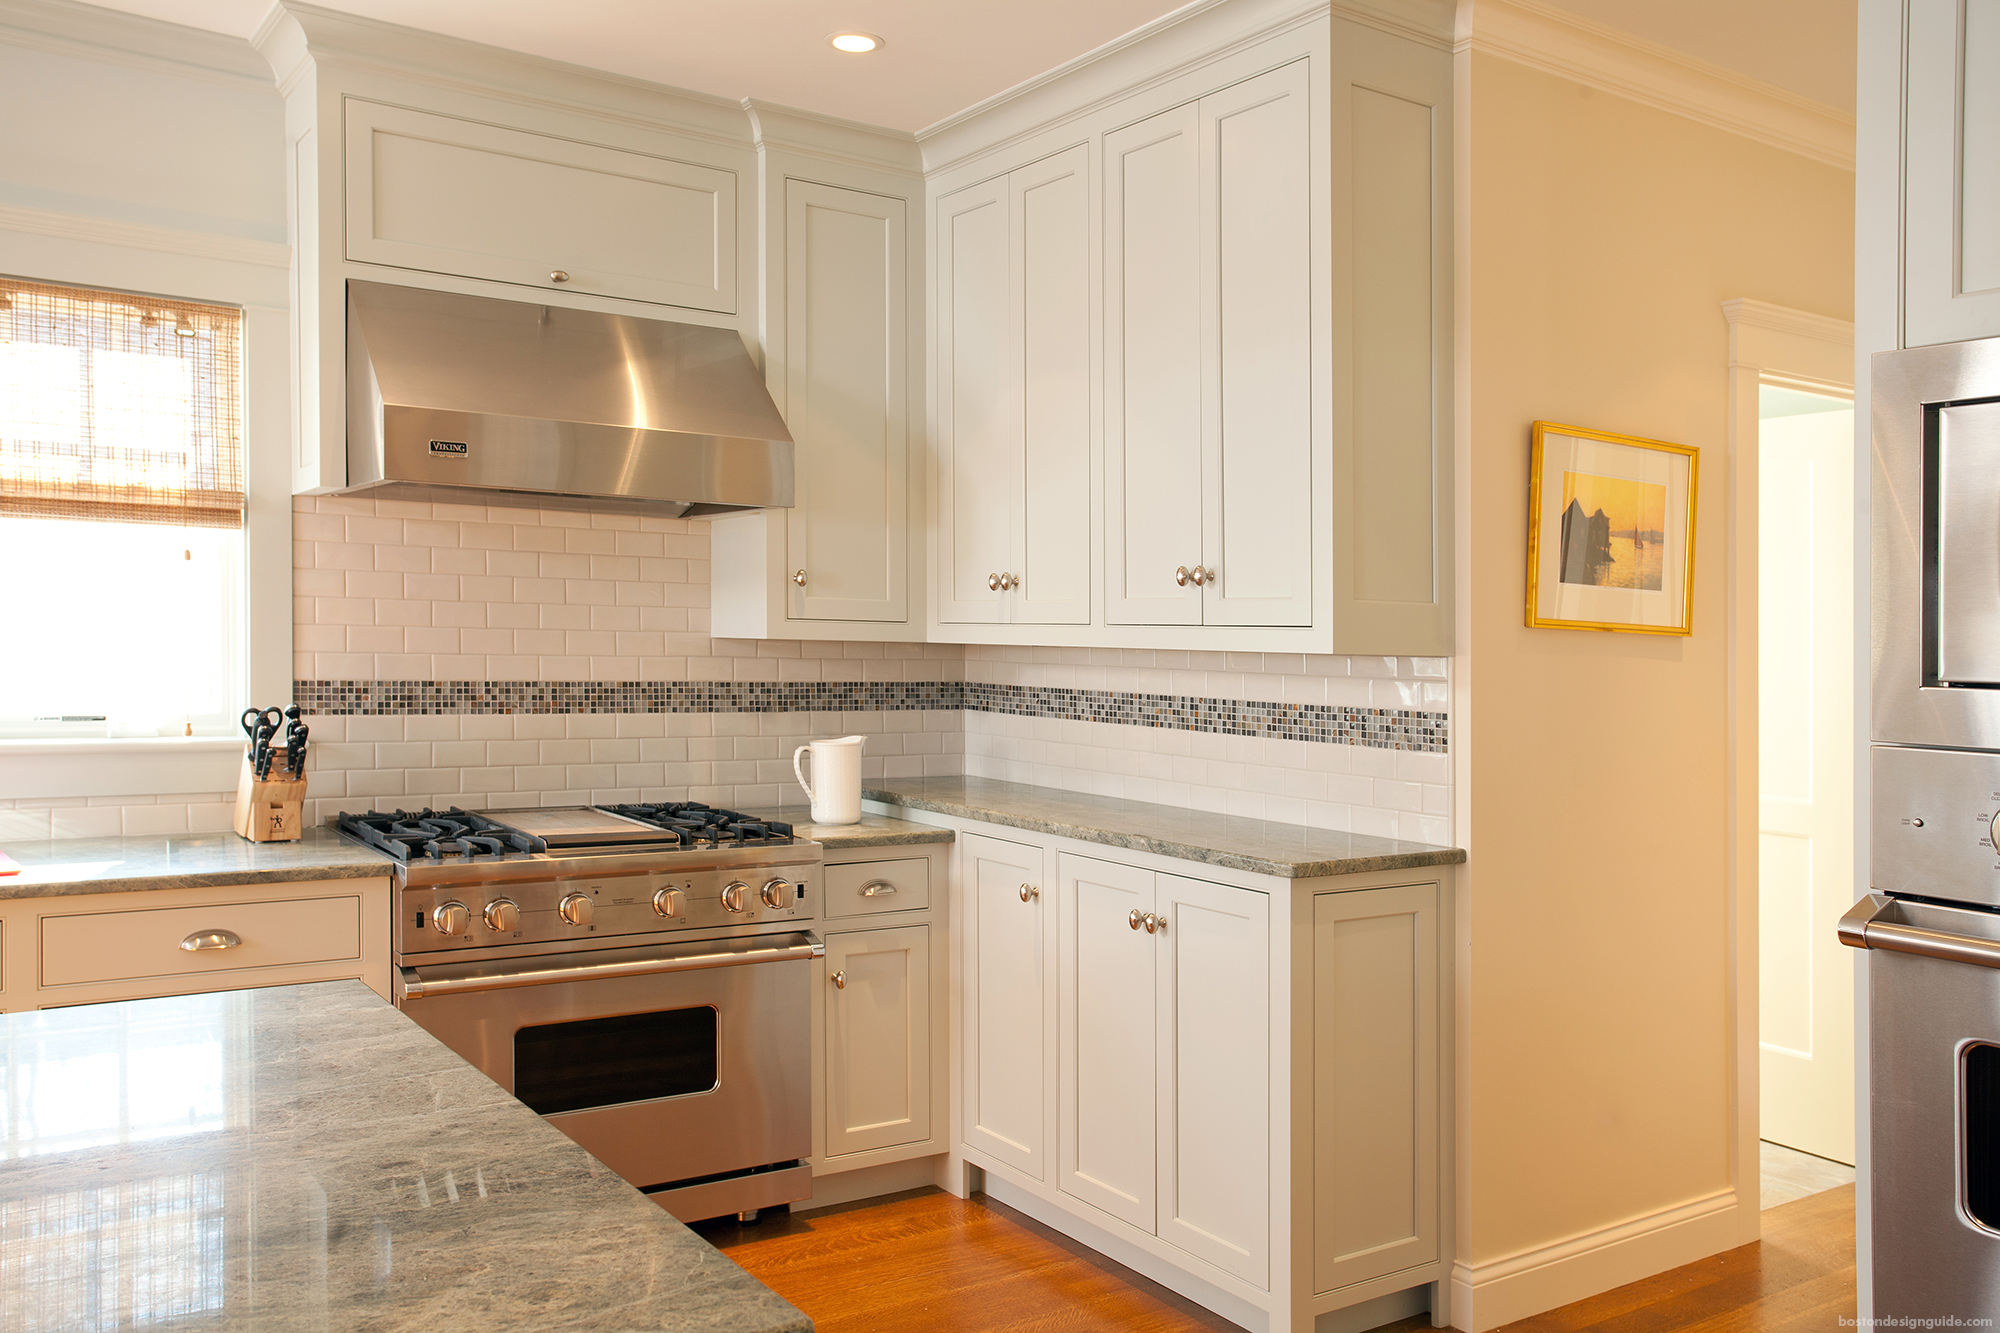 Boston Kitchen Cabinets Boston Cabinets Kitchen Cabinets